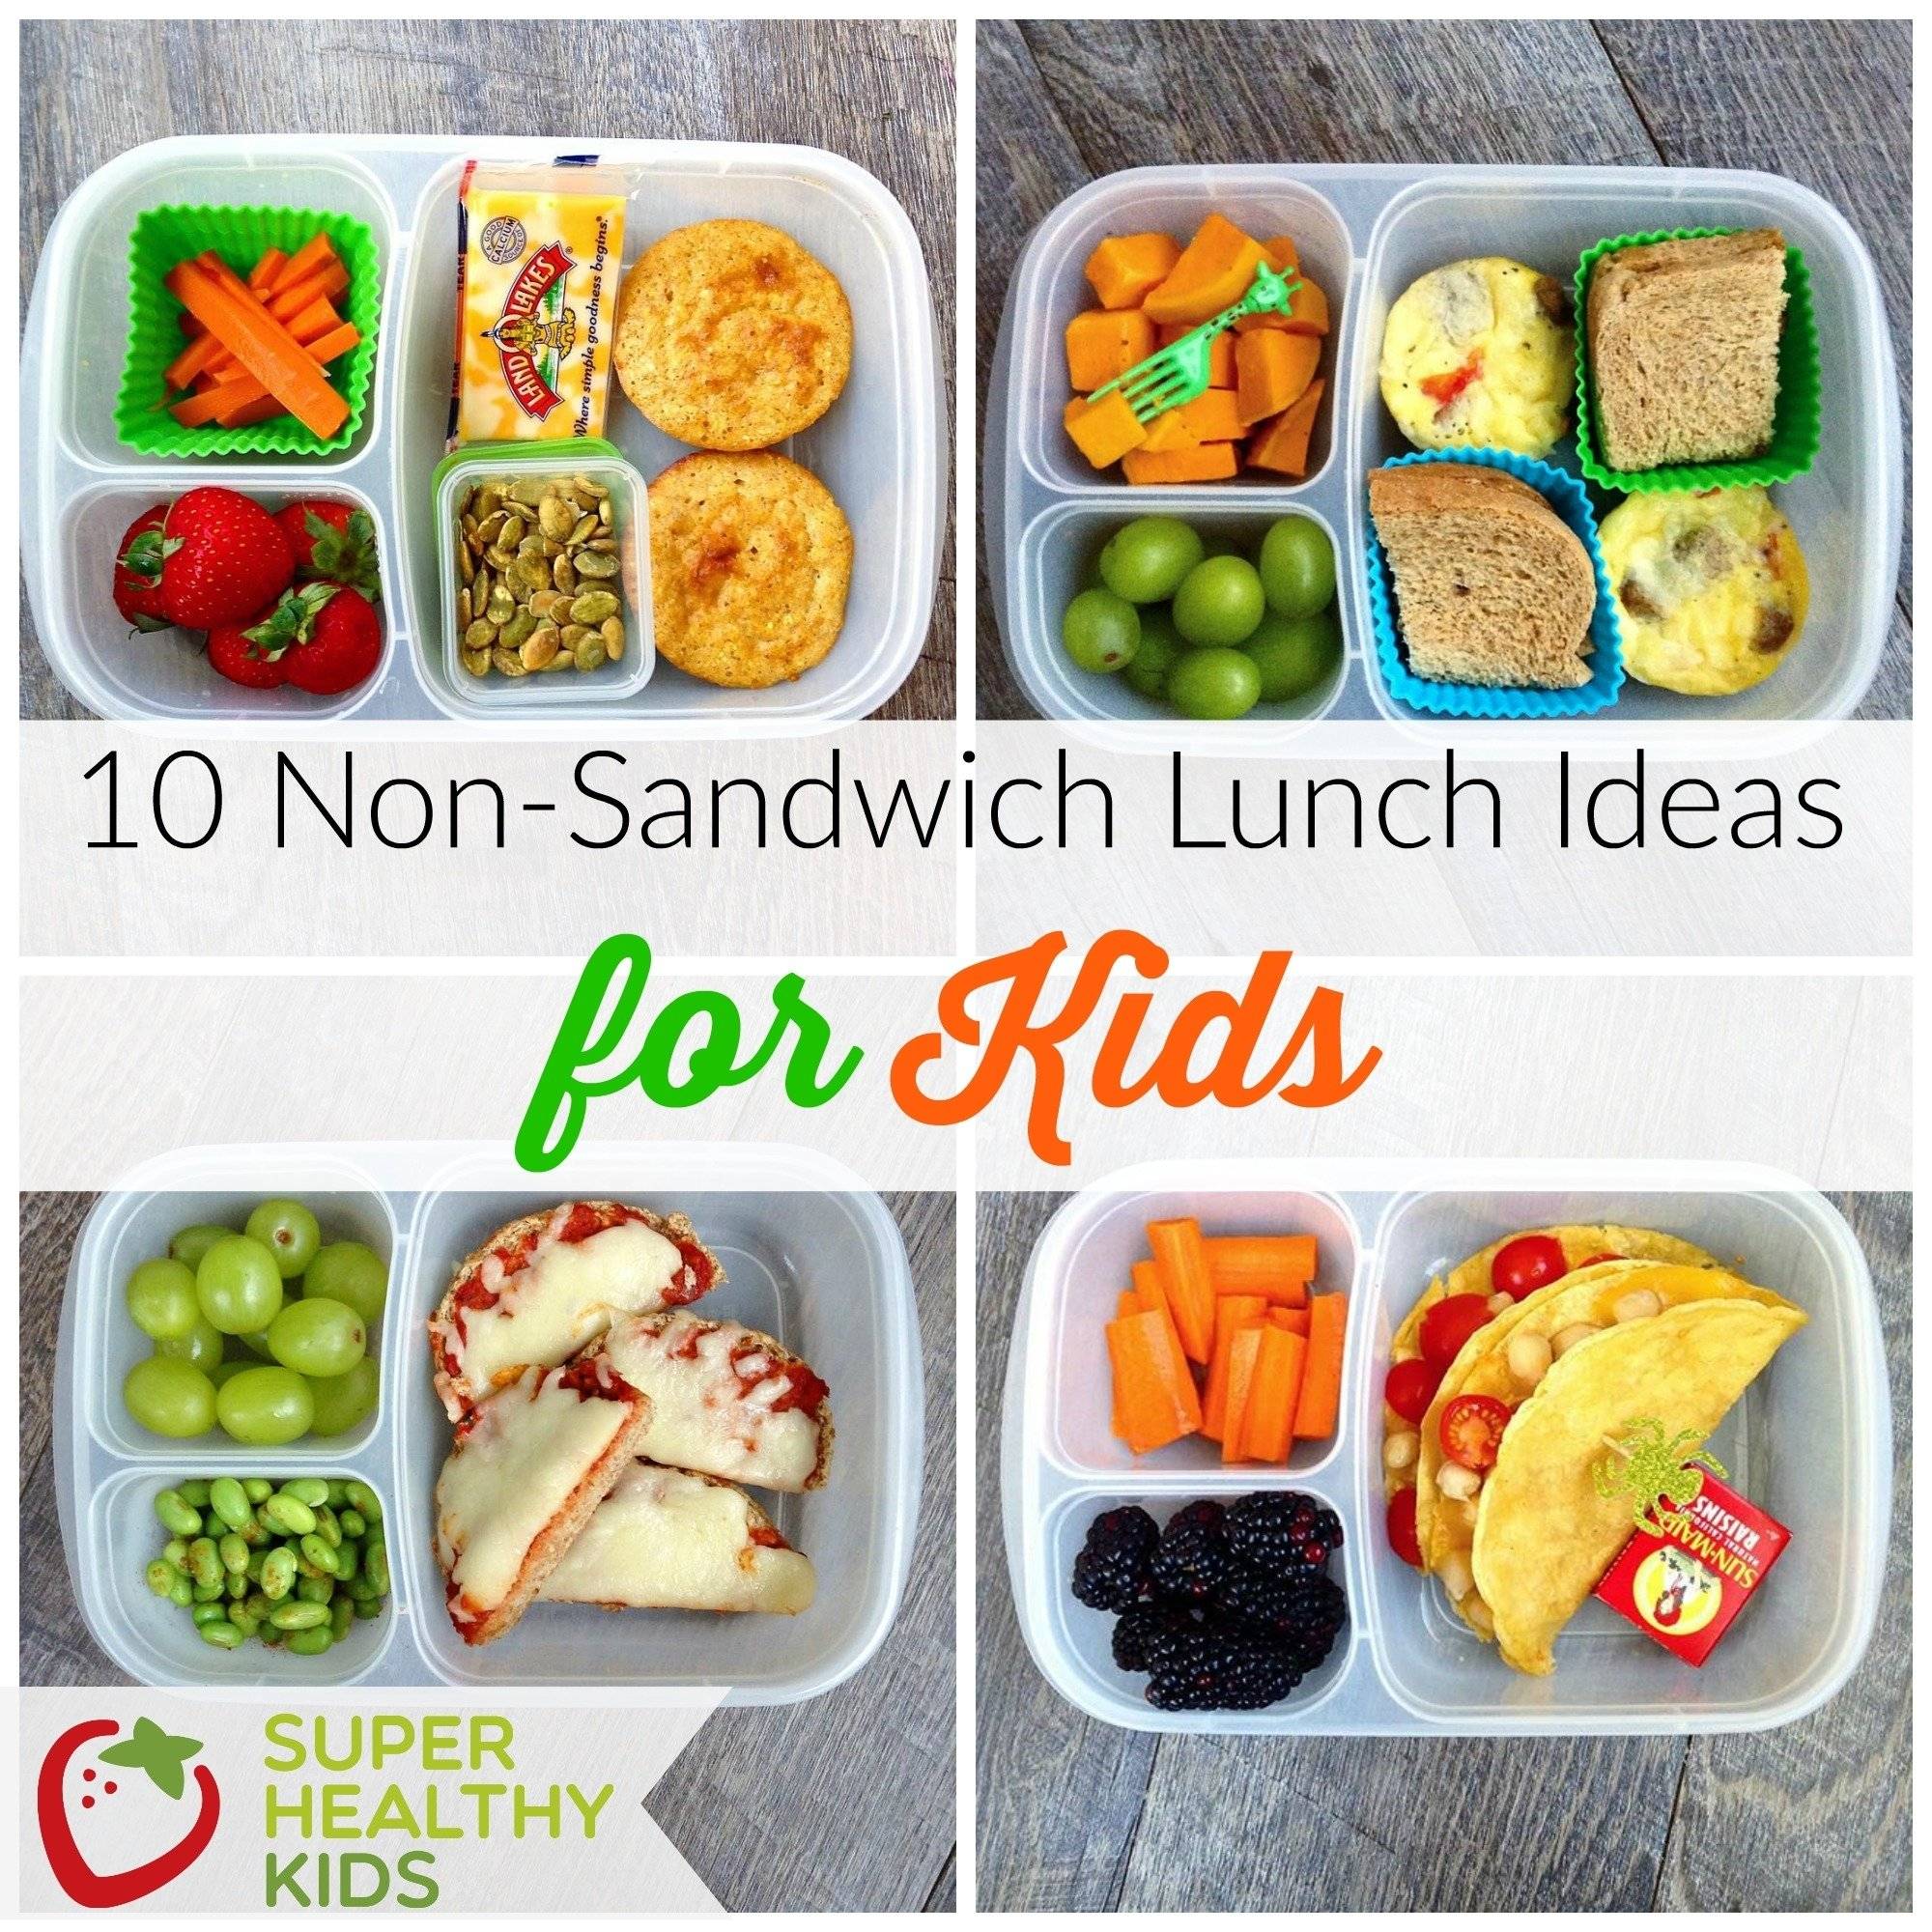 10 Amazing Good Lunch Ideas For Kids 10 non sandwich lunch ideas for kids healthy ideas for kids 5 2020